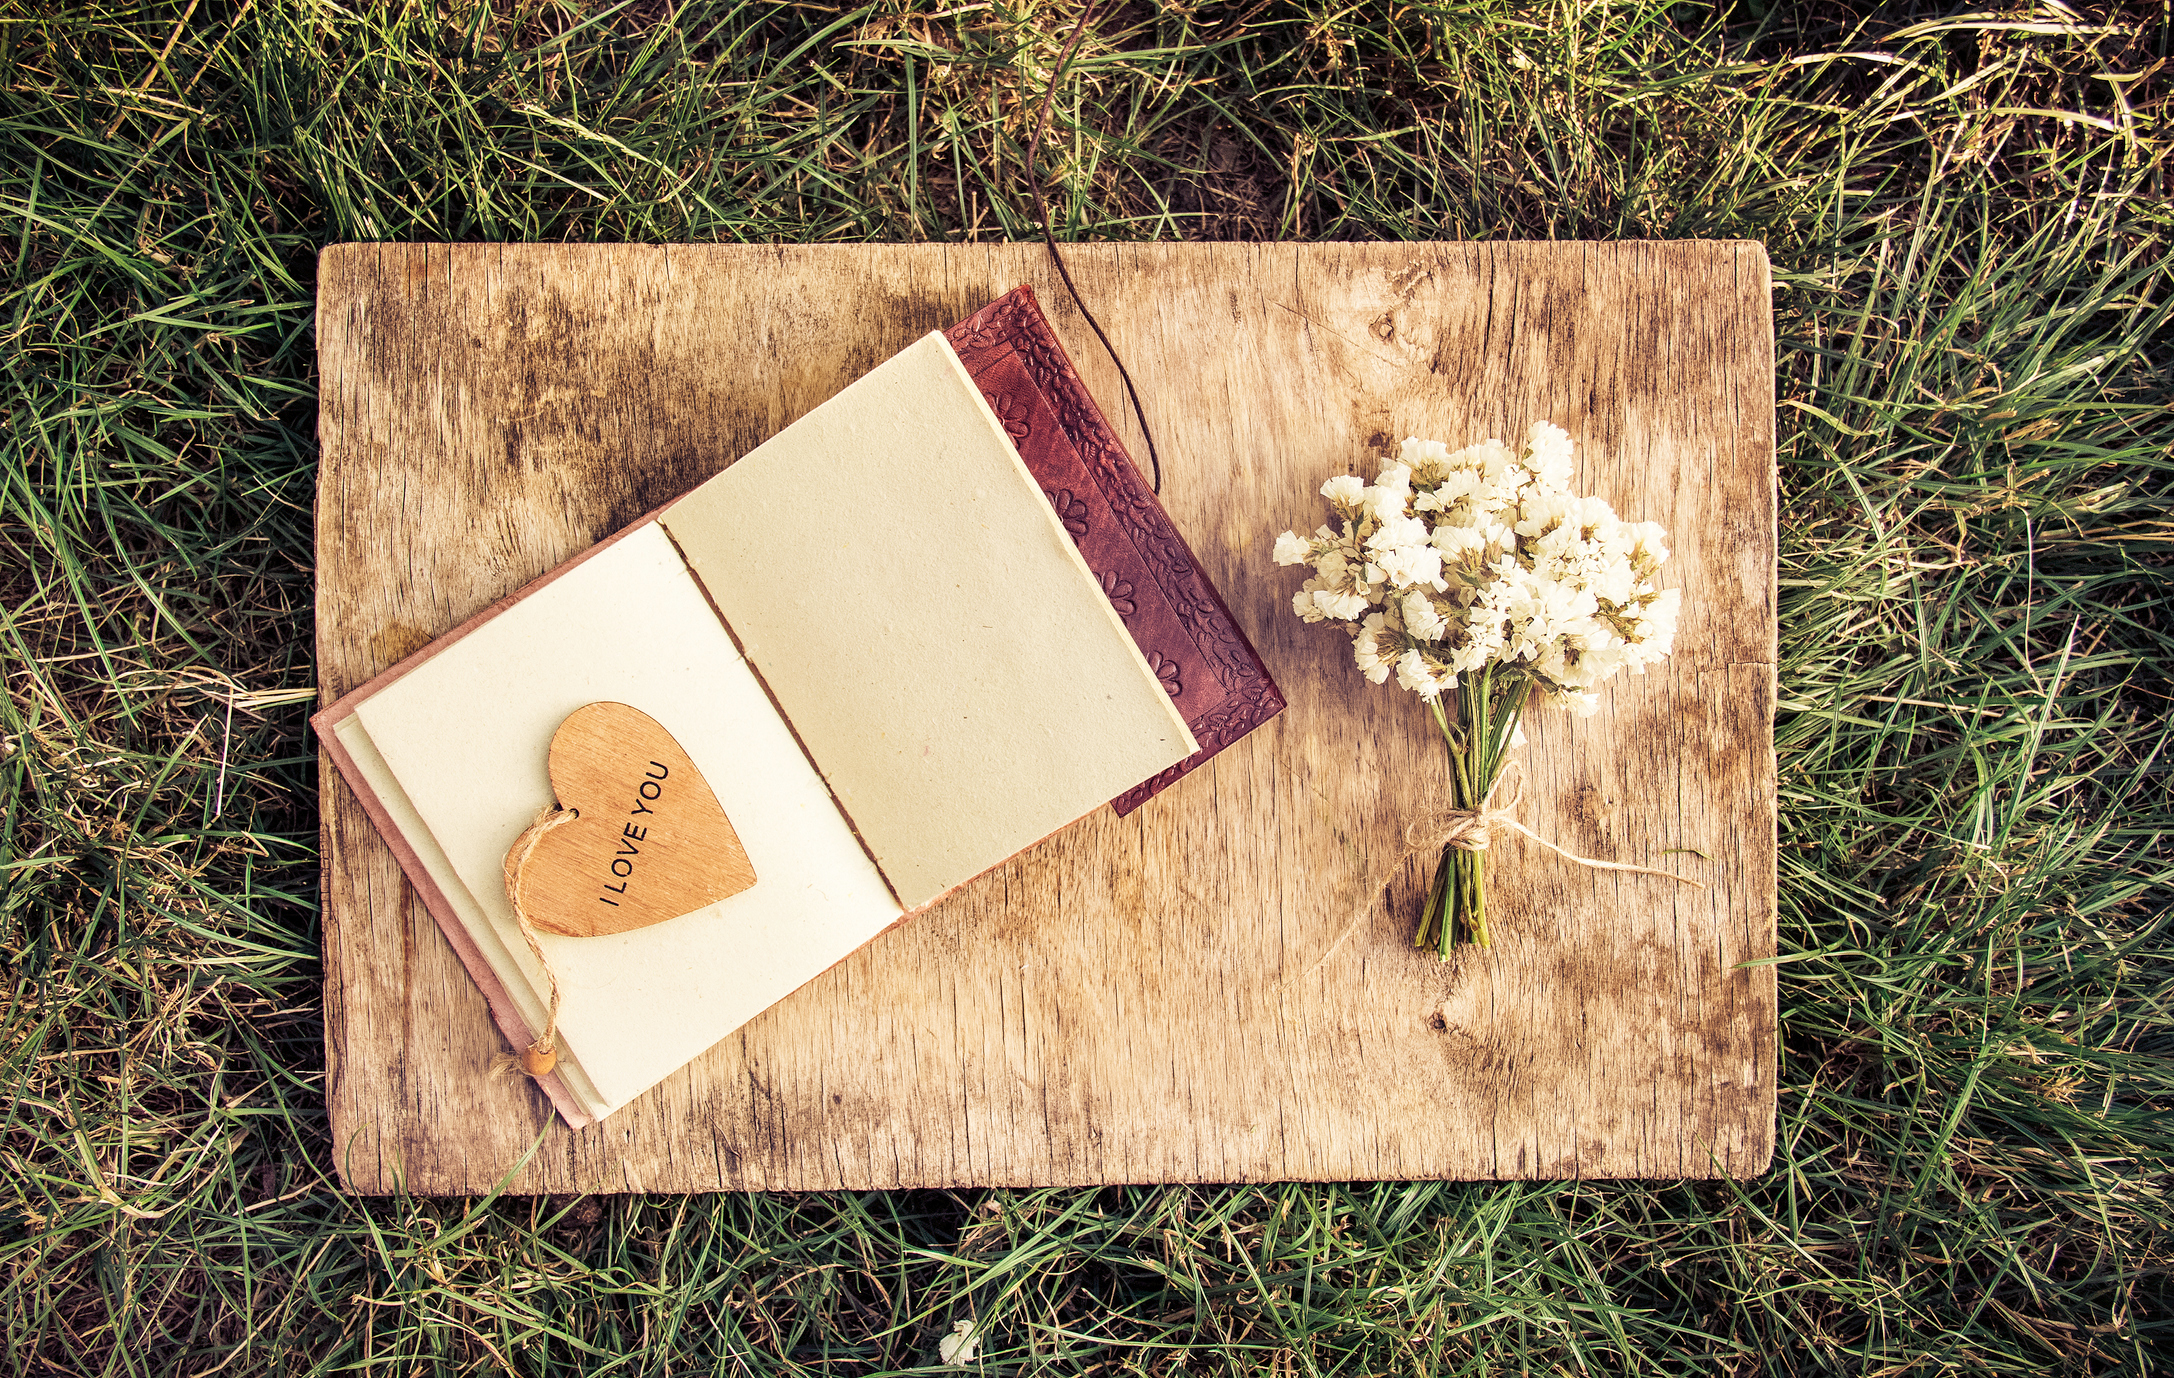 12 Ideas For What To Do With Flowers From A Funeral Lovetoknow